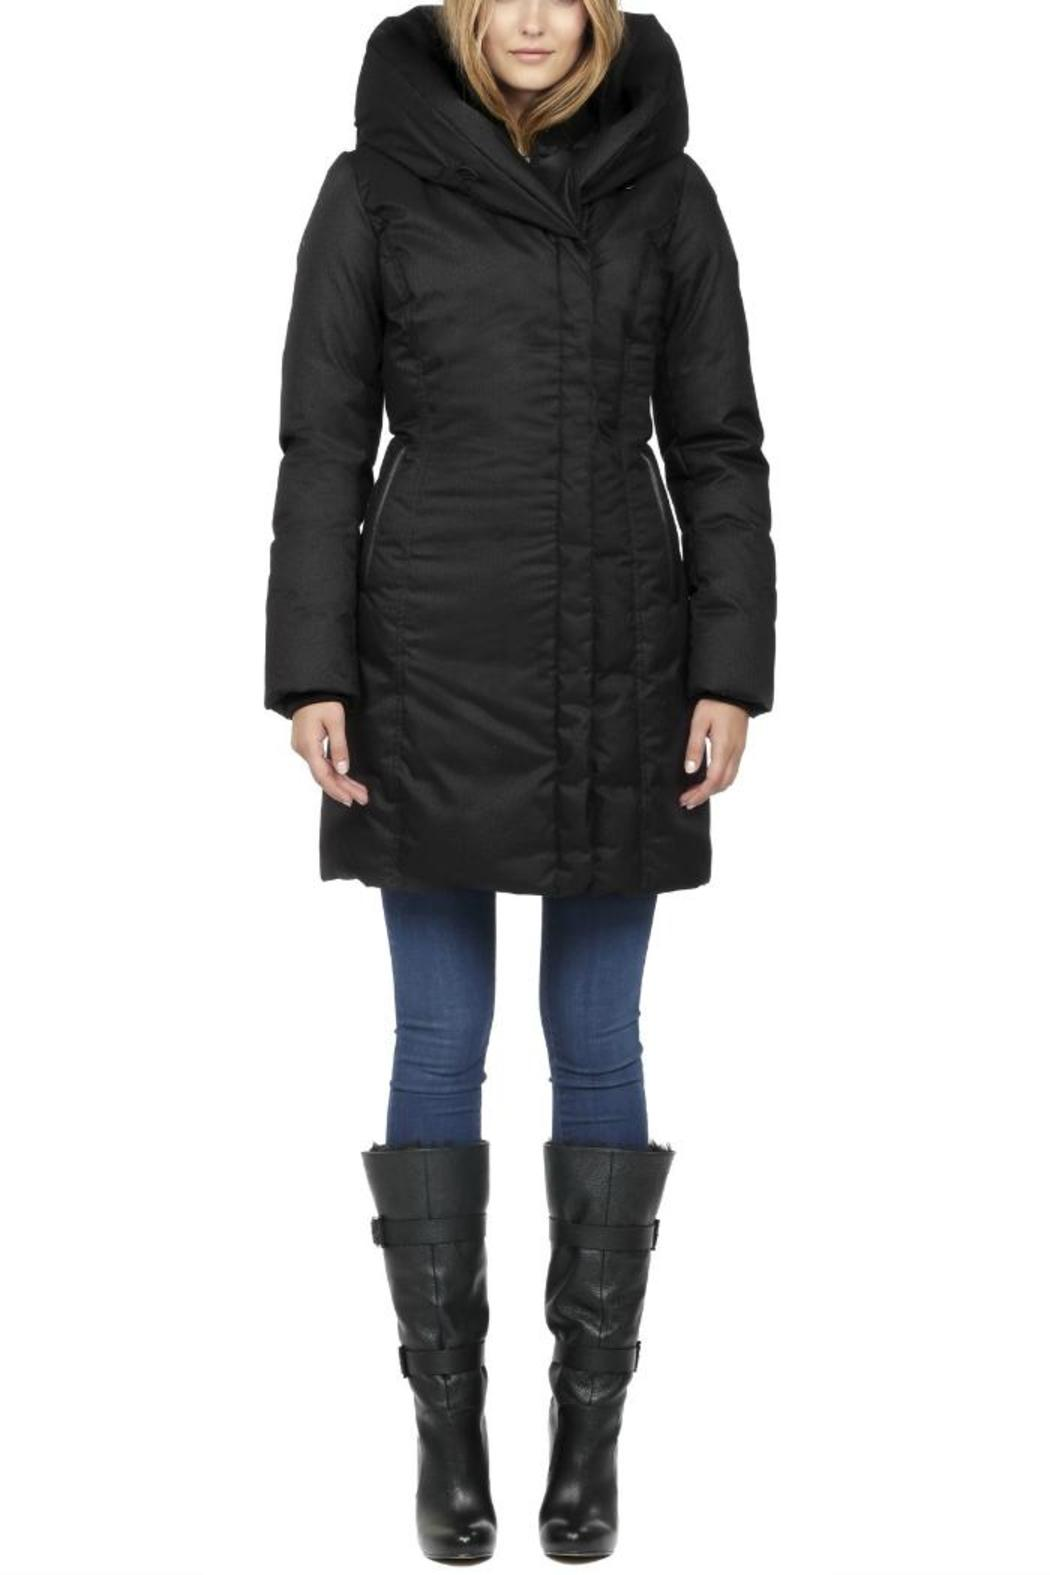 Soia & Kyo Asymmetrical Down Coat from Toronto by ...